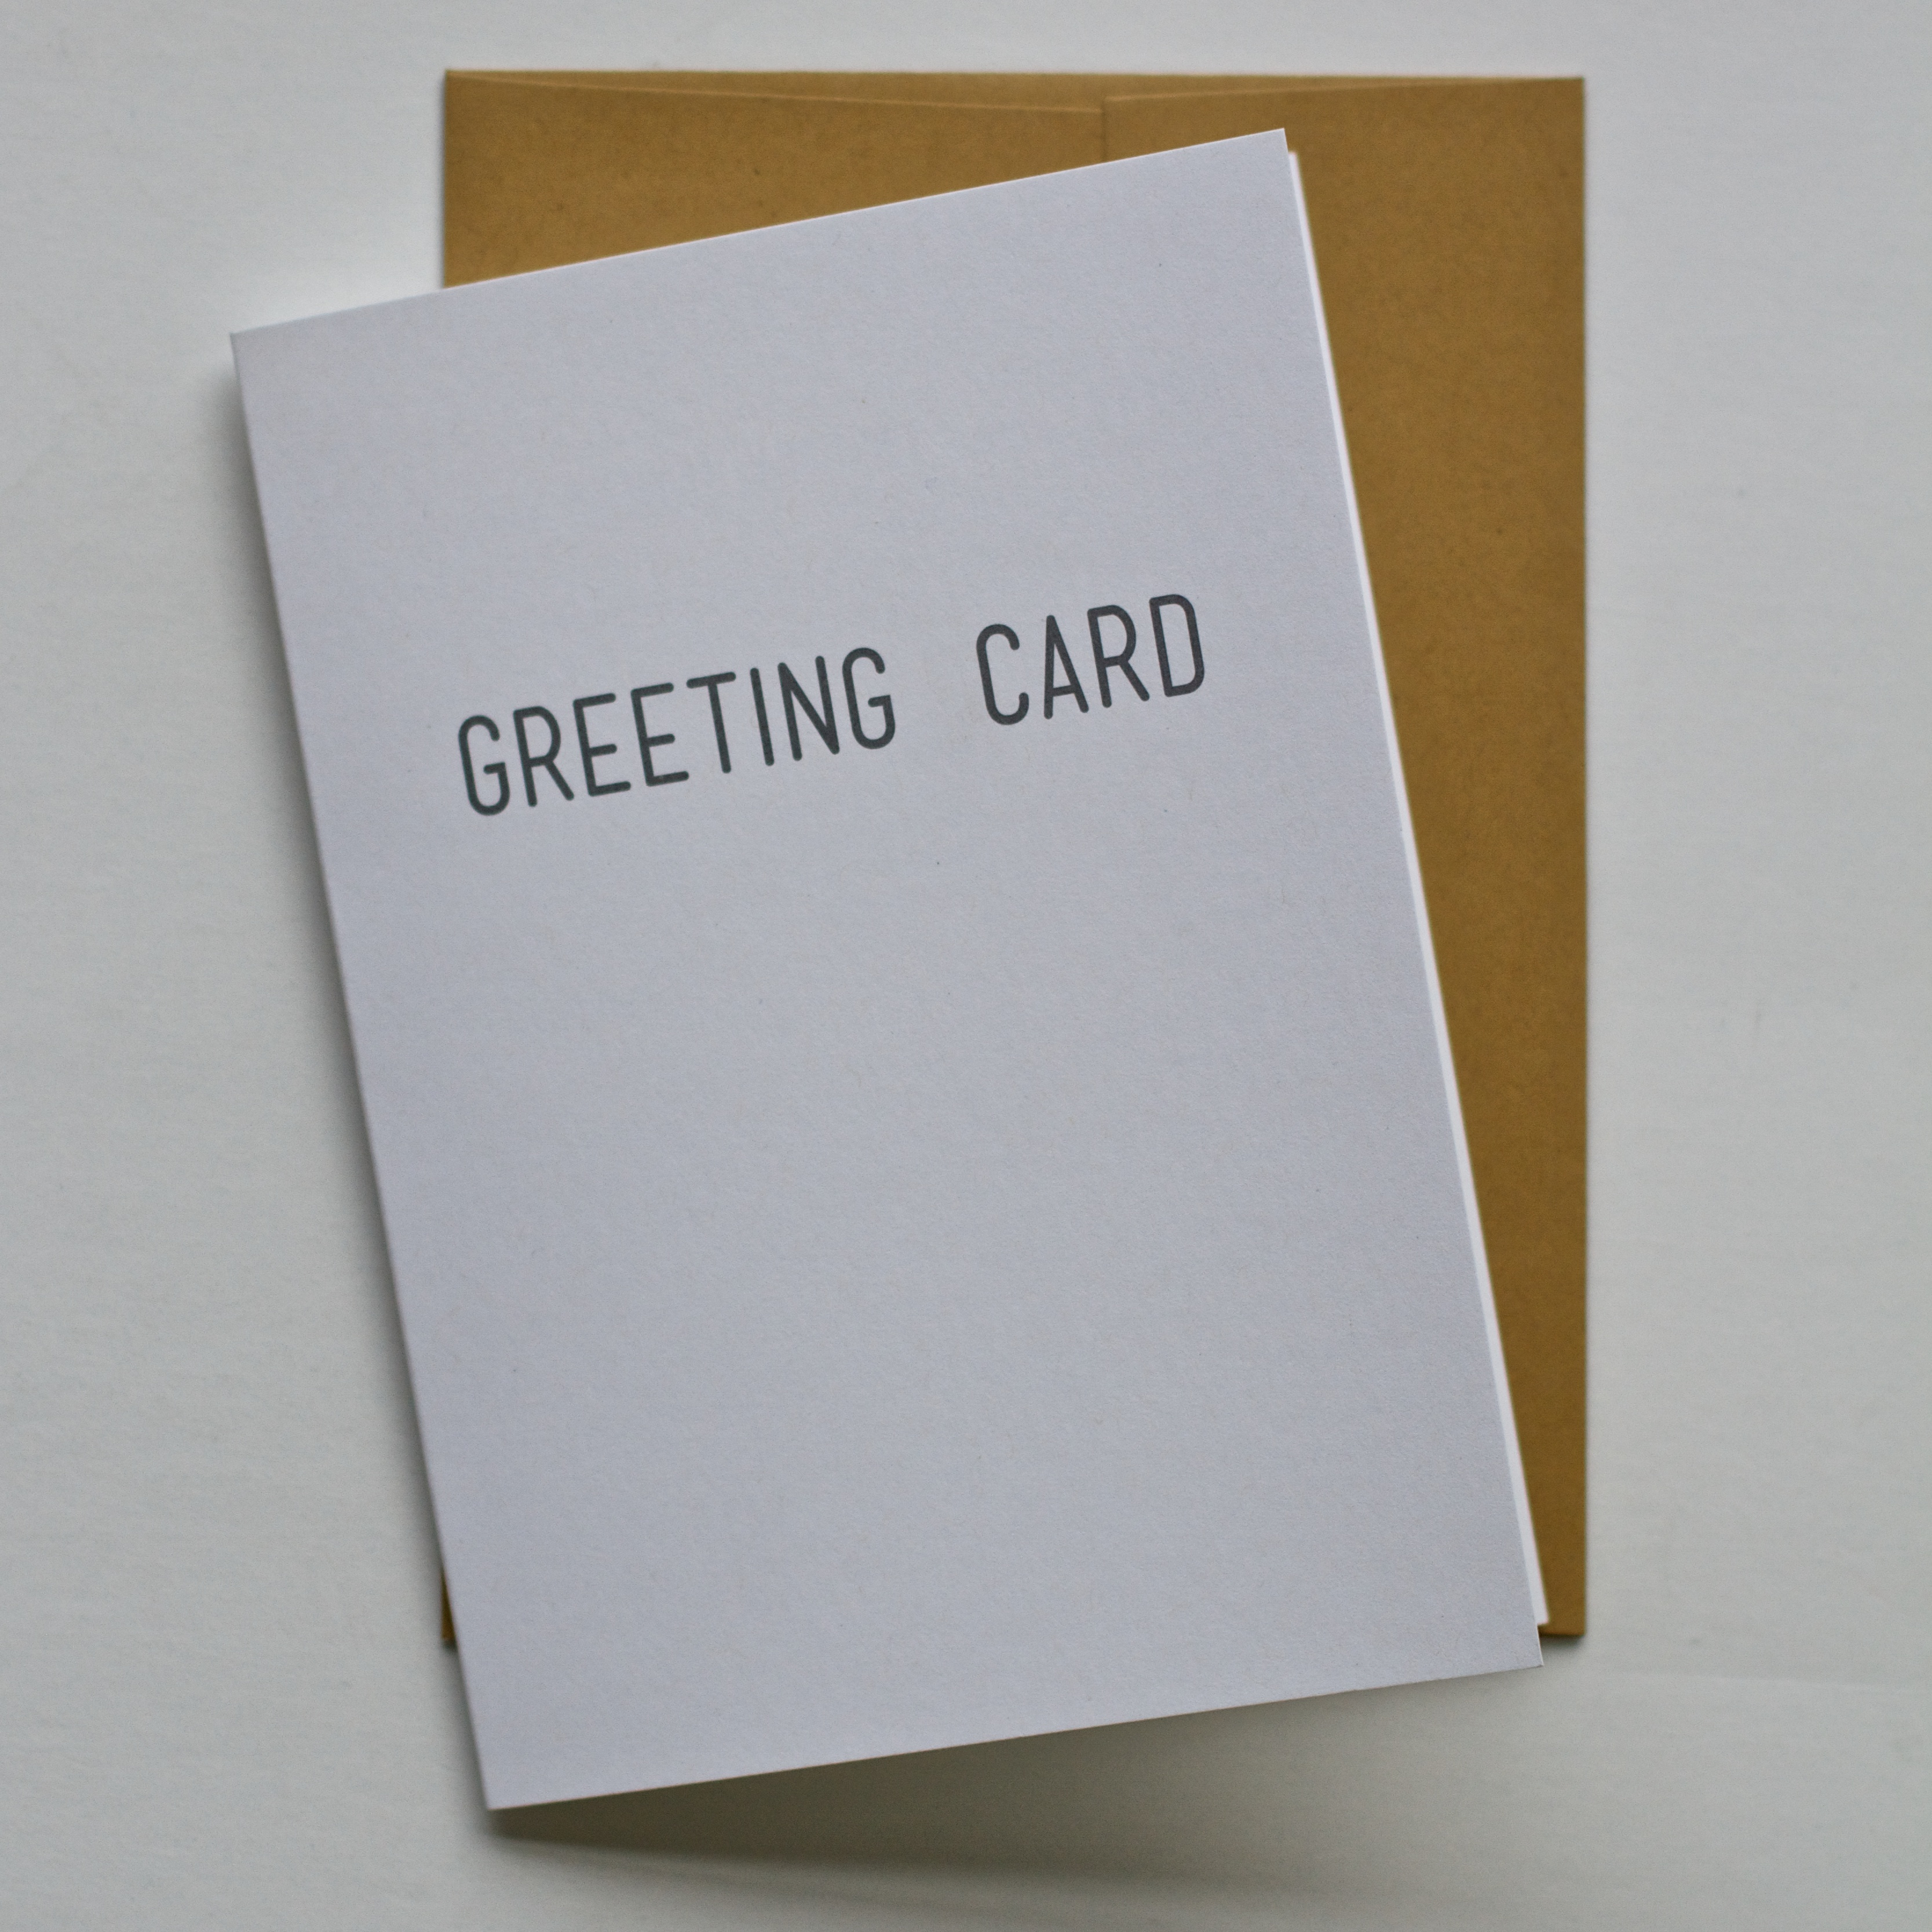 Greeting Card - Registered Goods